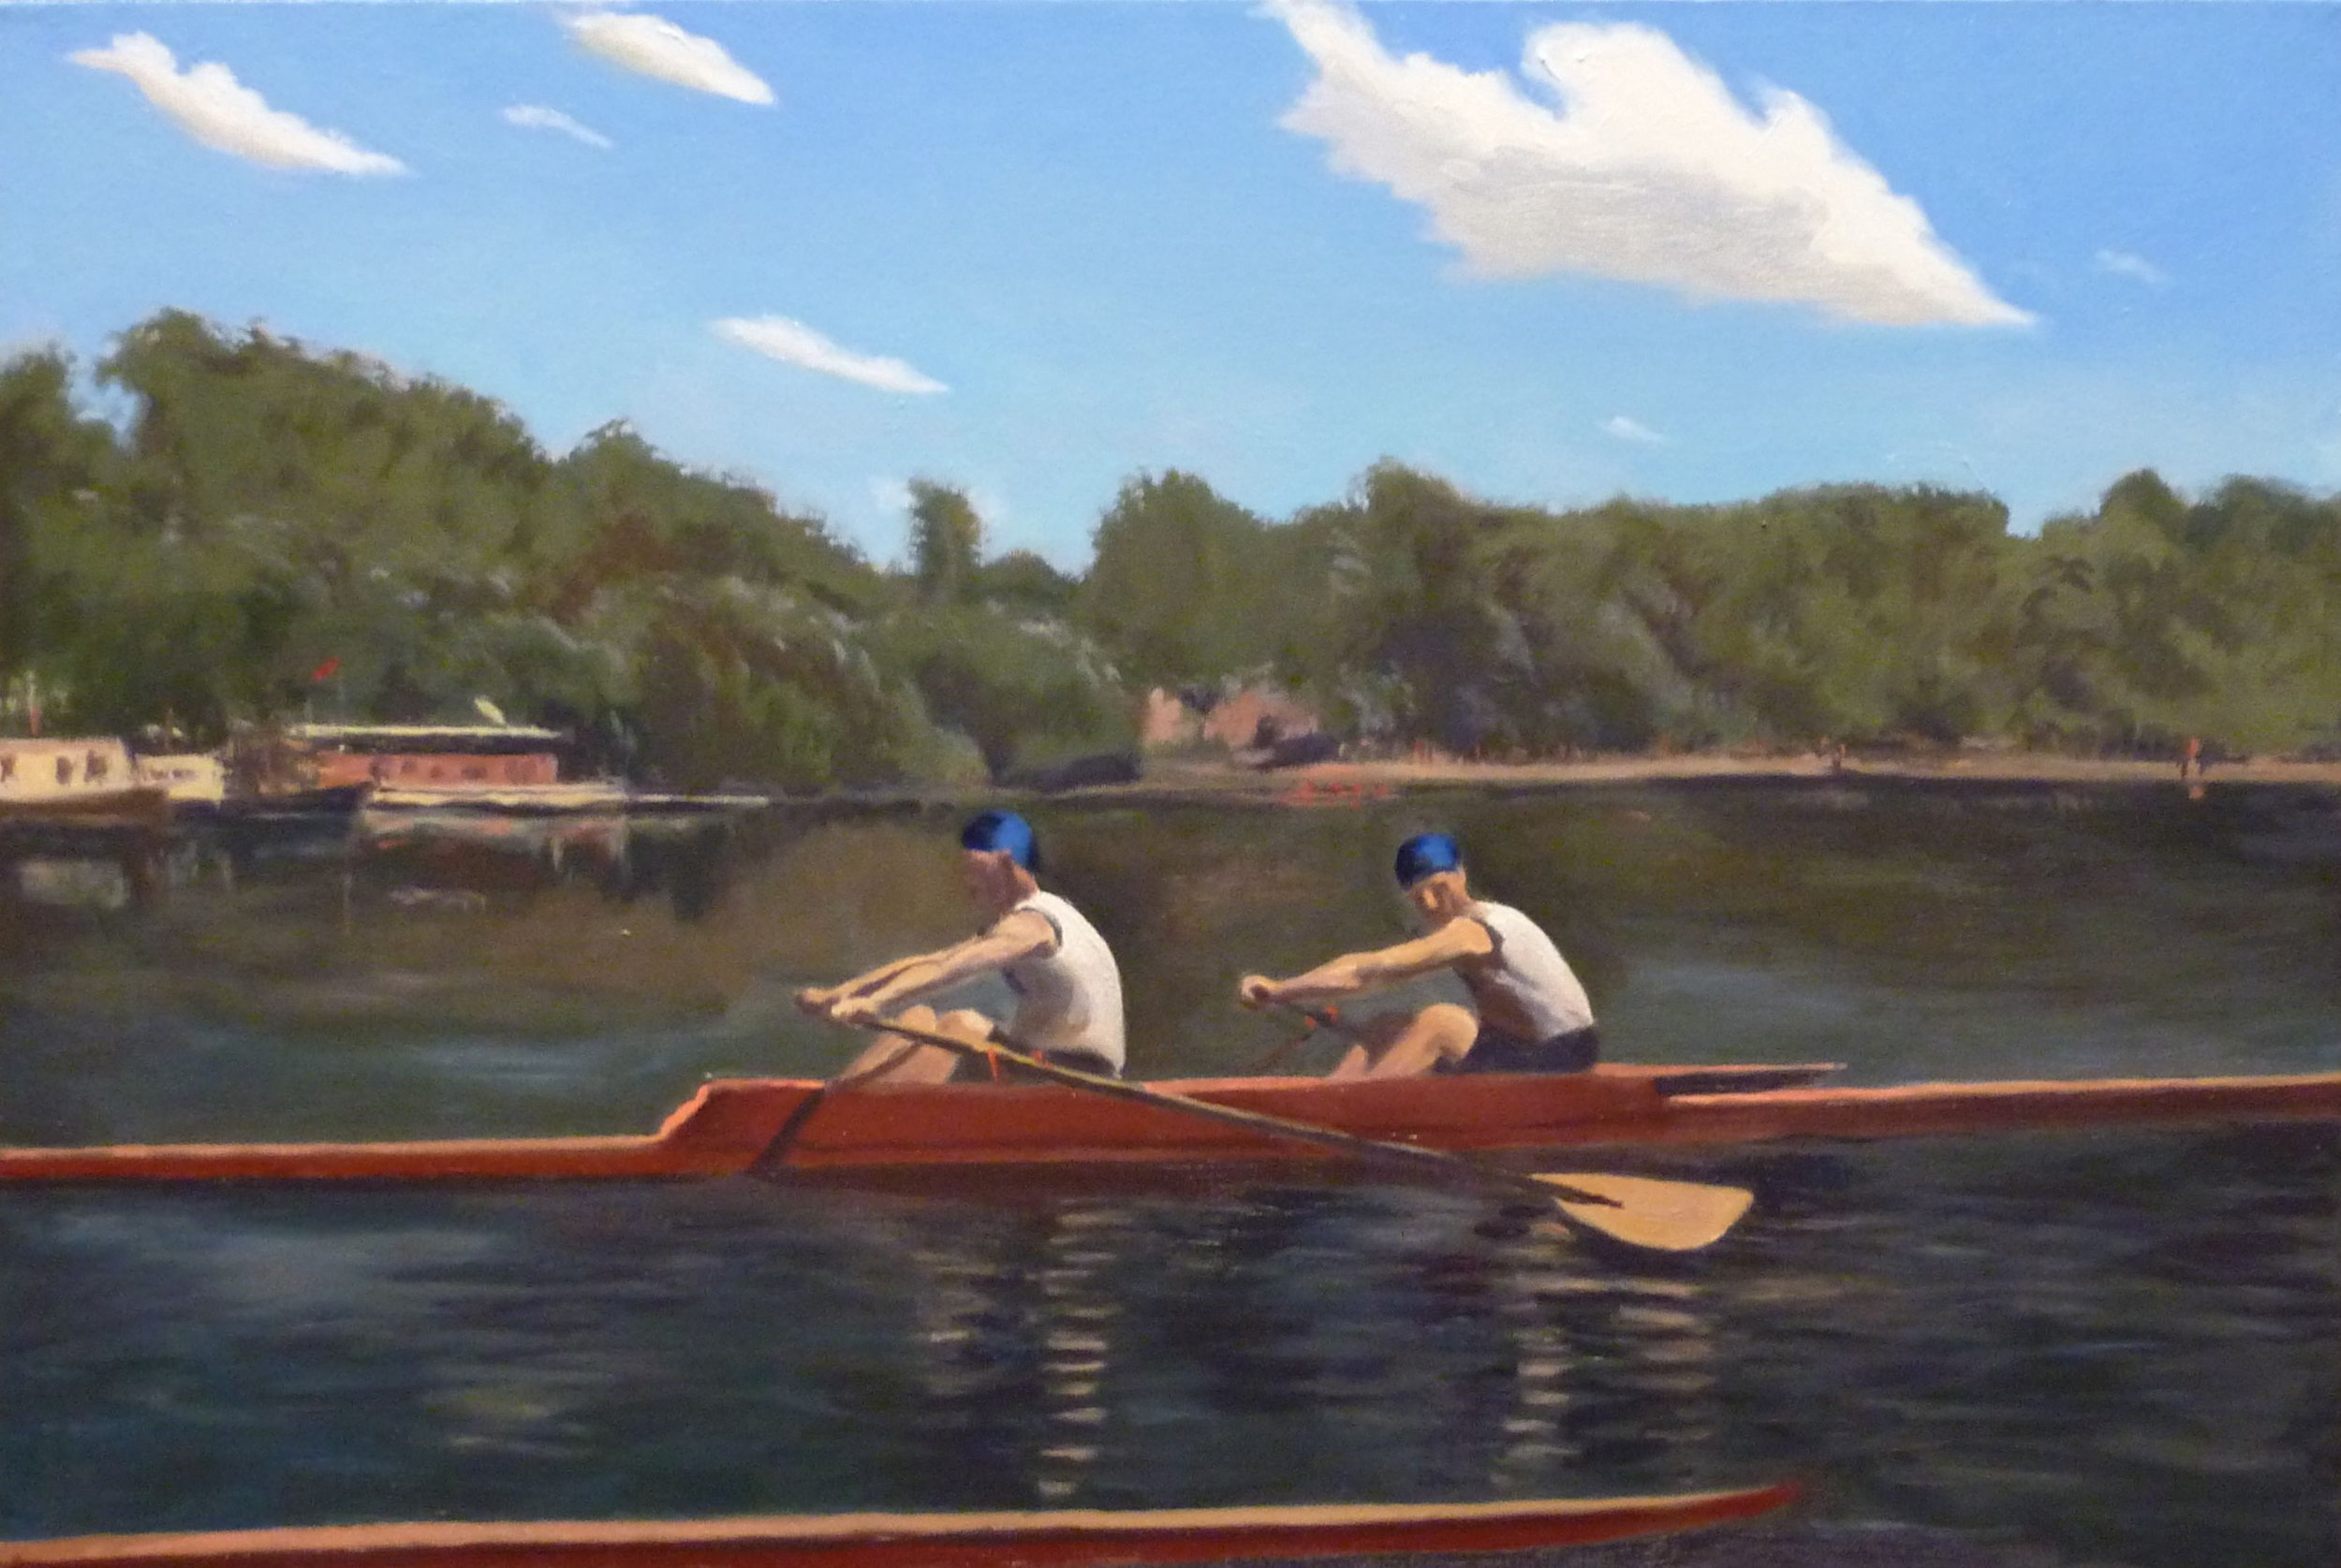 Copy after Thomas Eakins    The Biglin Brothers Racing